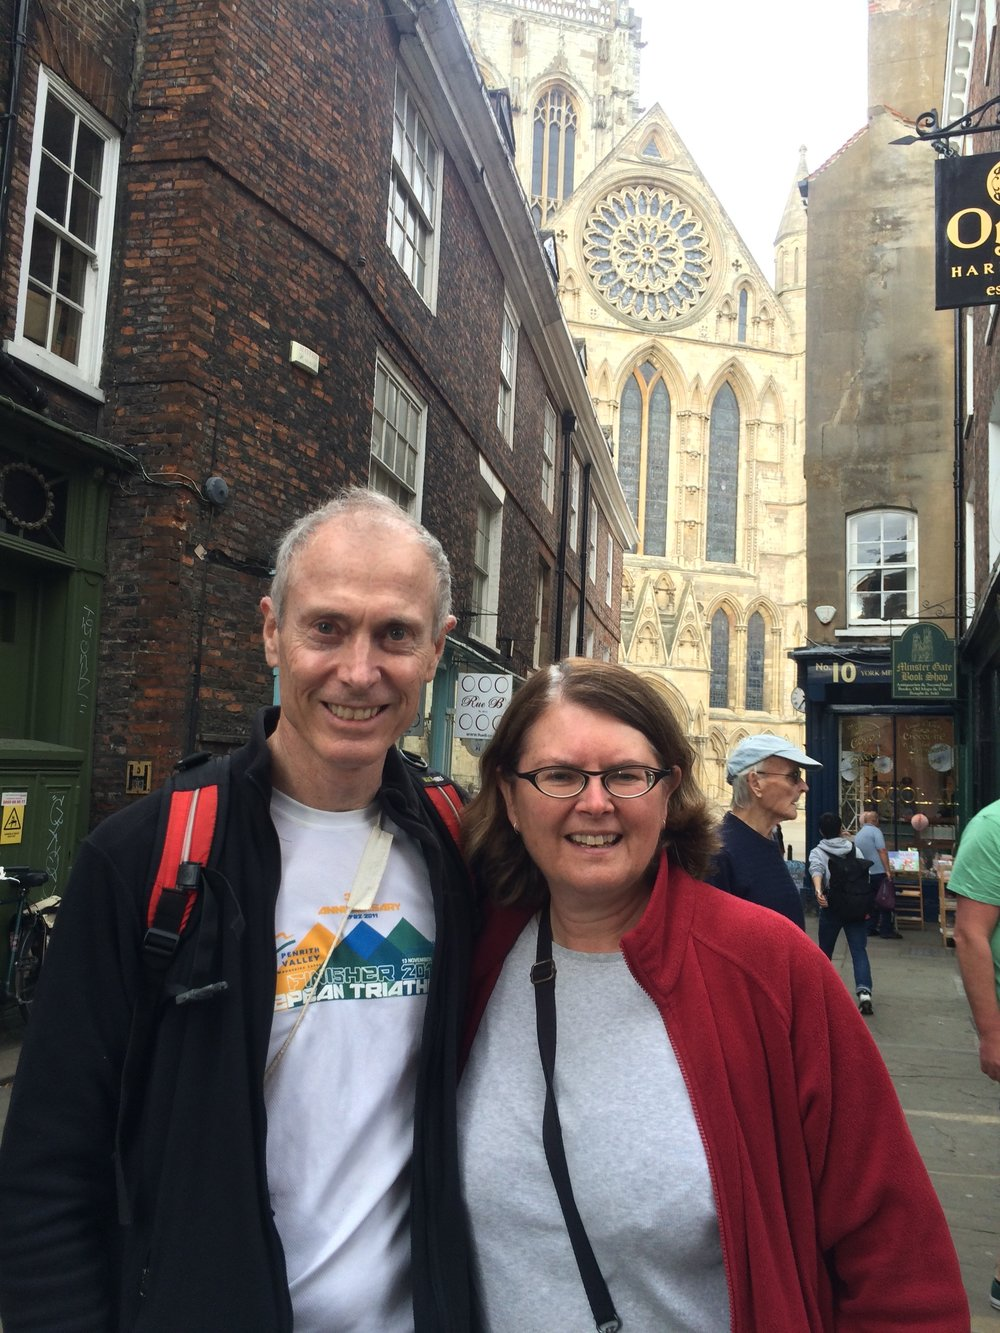 Paul and Karen in York